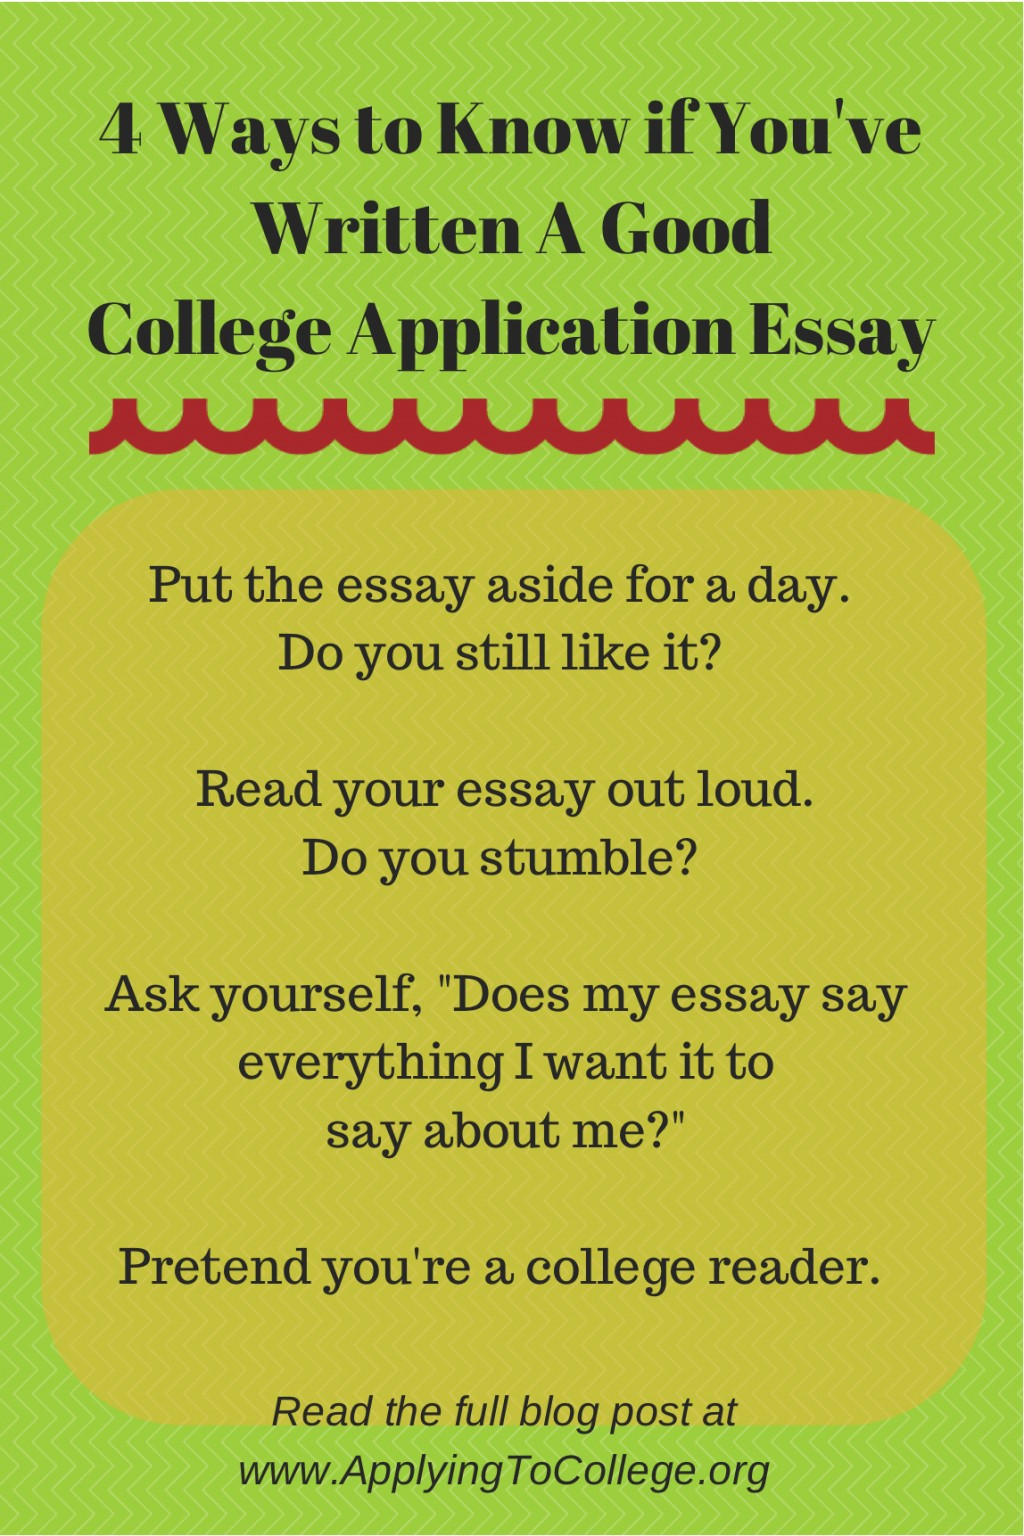 019 Tips To Write Good Essay Example 4ways Know If Youve Marvelous A Narrative Persuasive In Exam Large